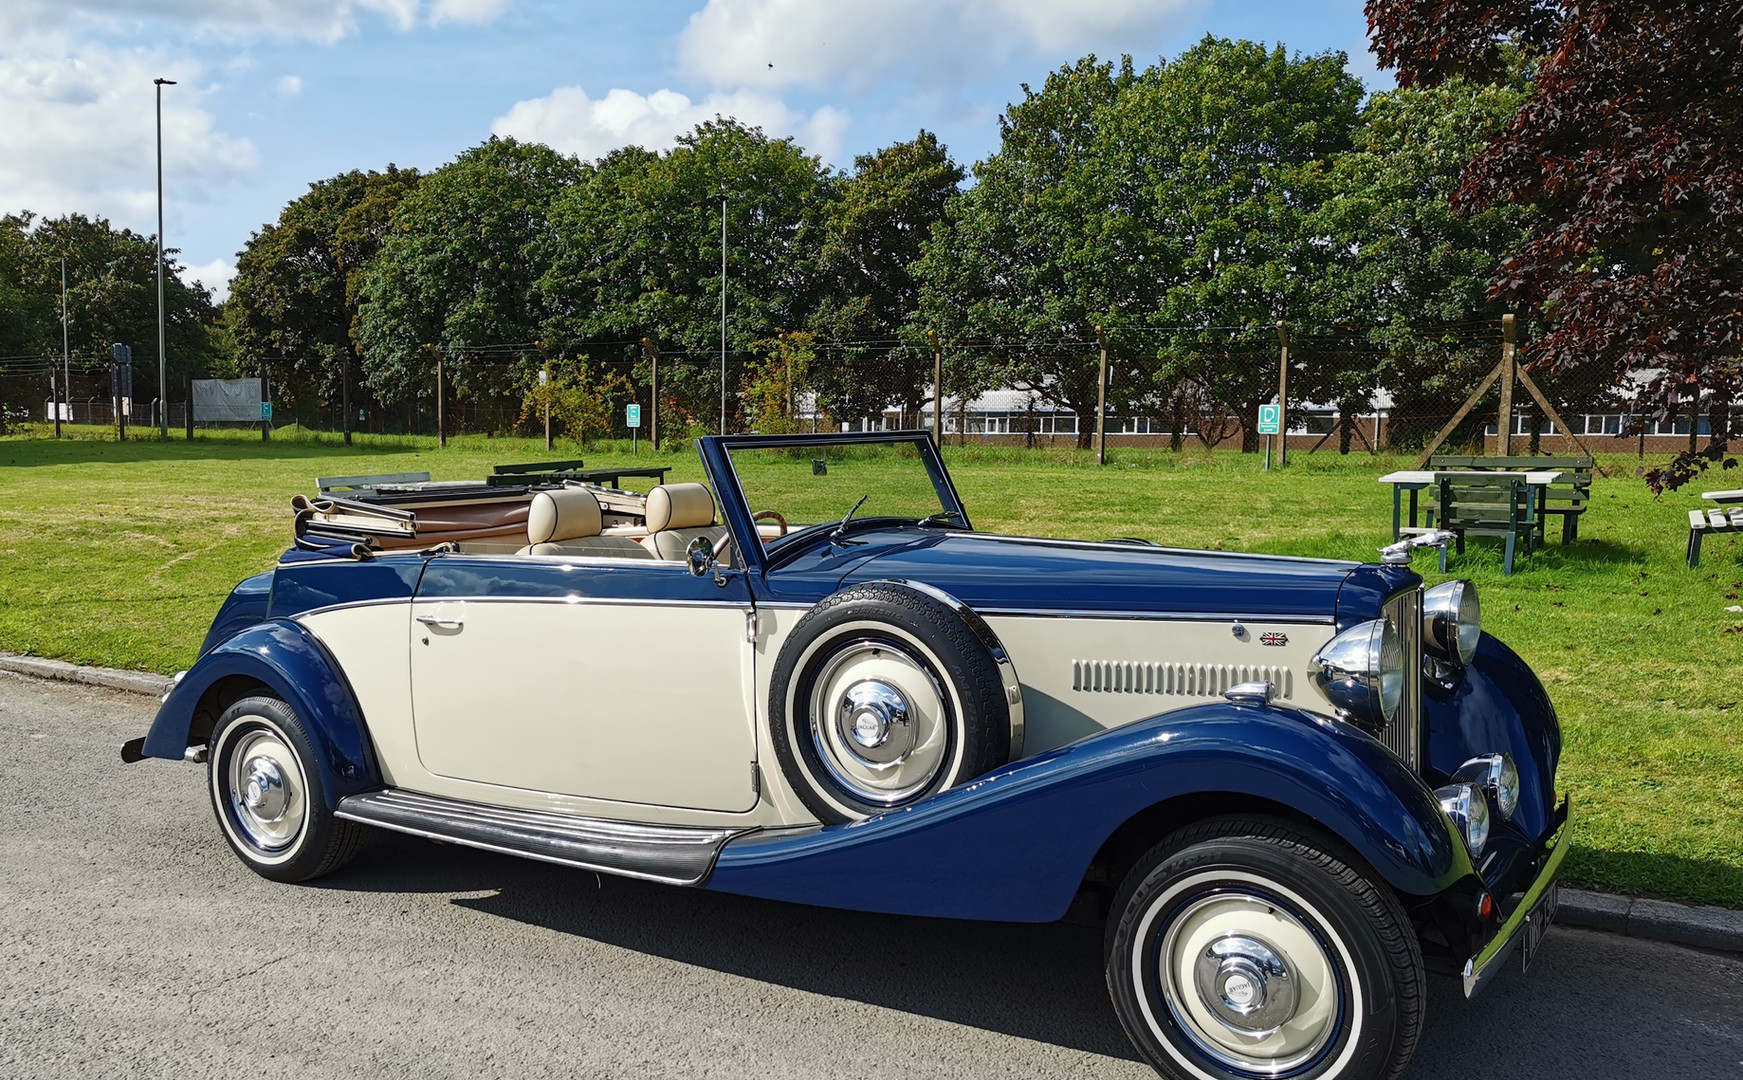 Royal Drophead   Prices Wedding Cars   Wedding car hire in Cardiff, Newport, South Wales